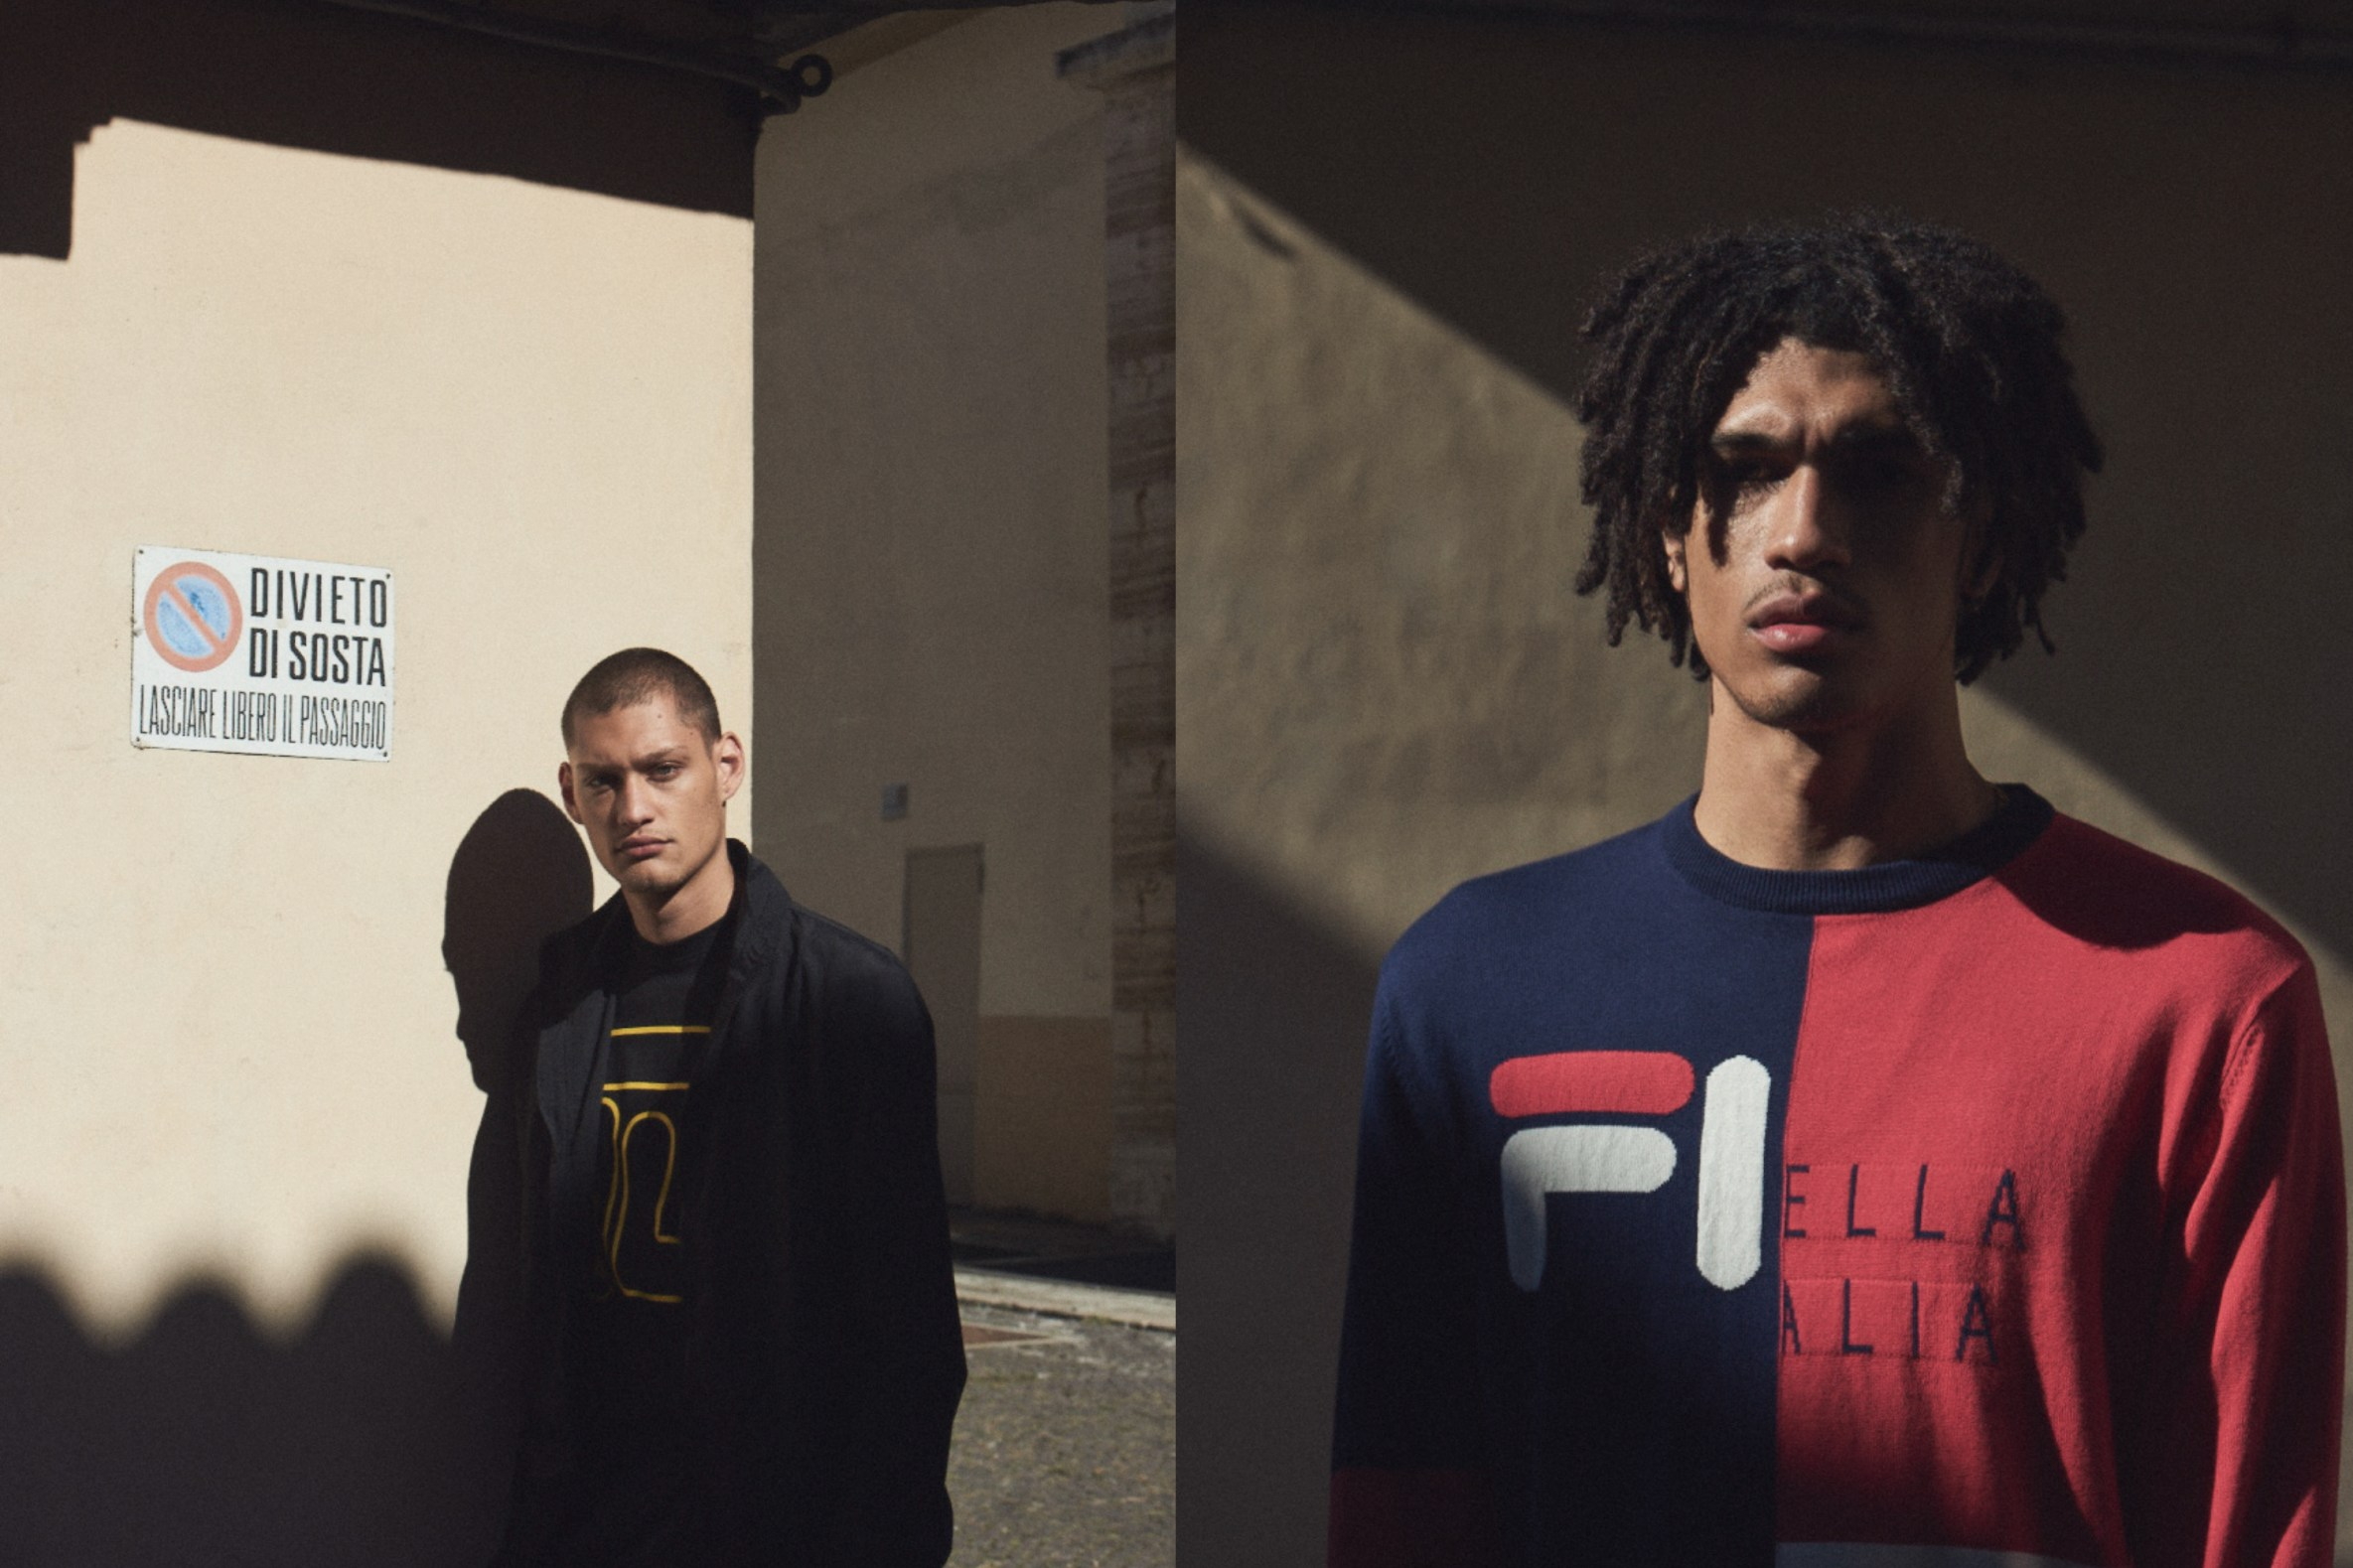 fila-2017-spring-summer-lookbook-3